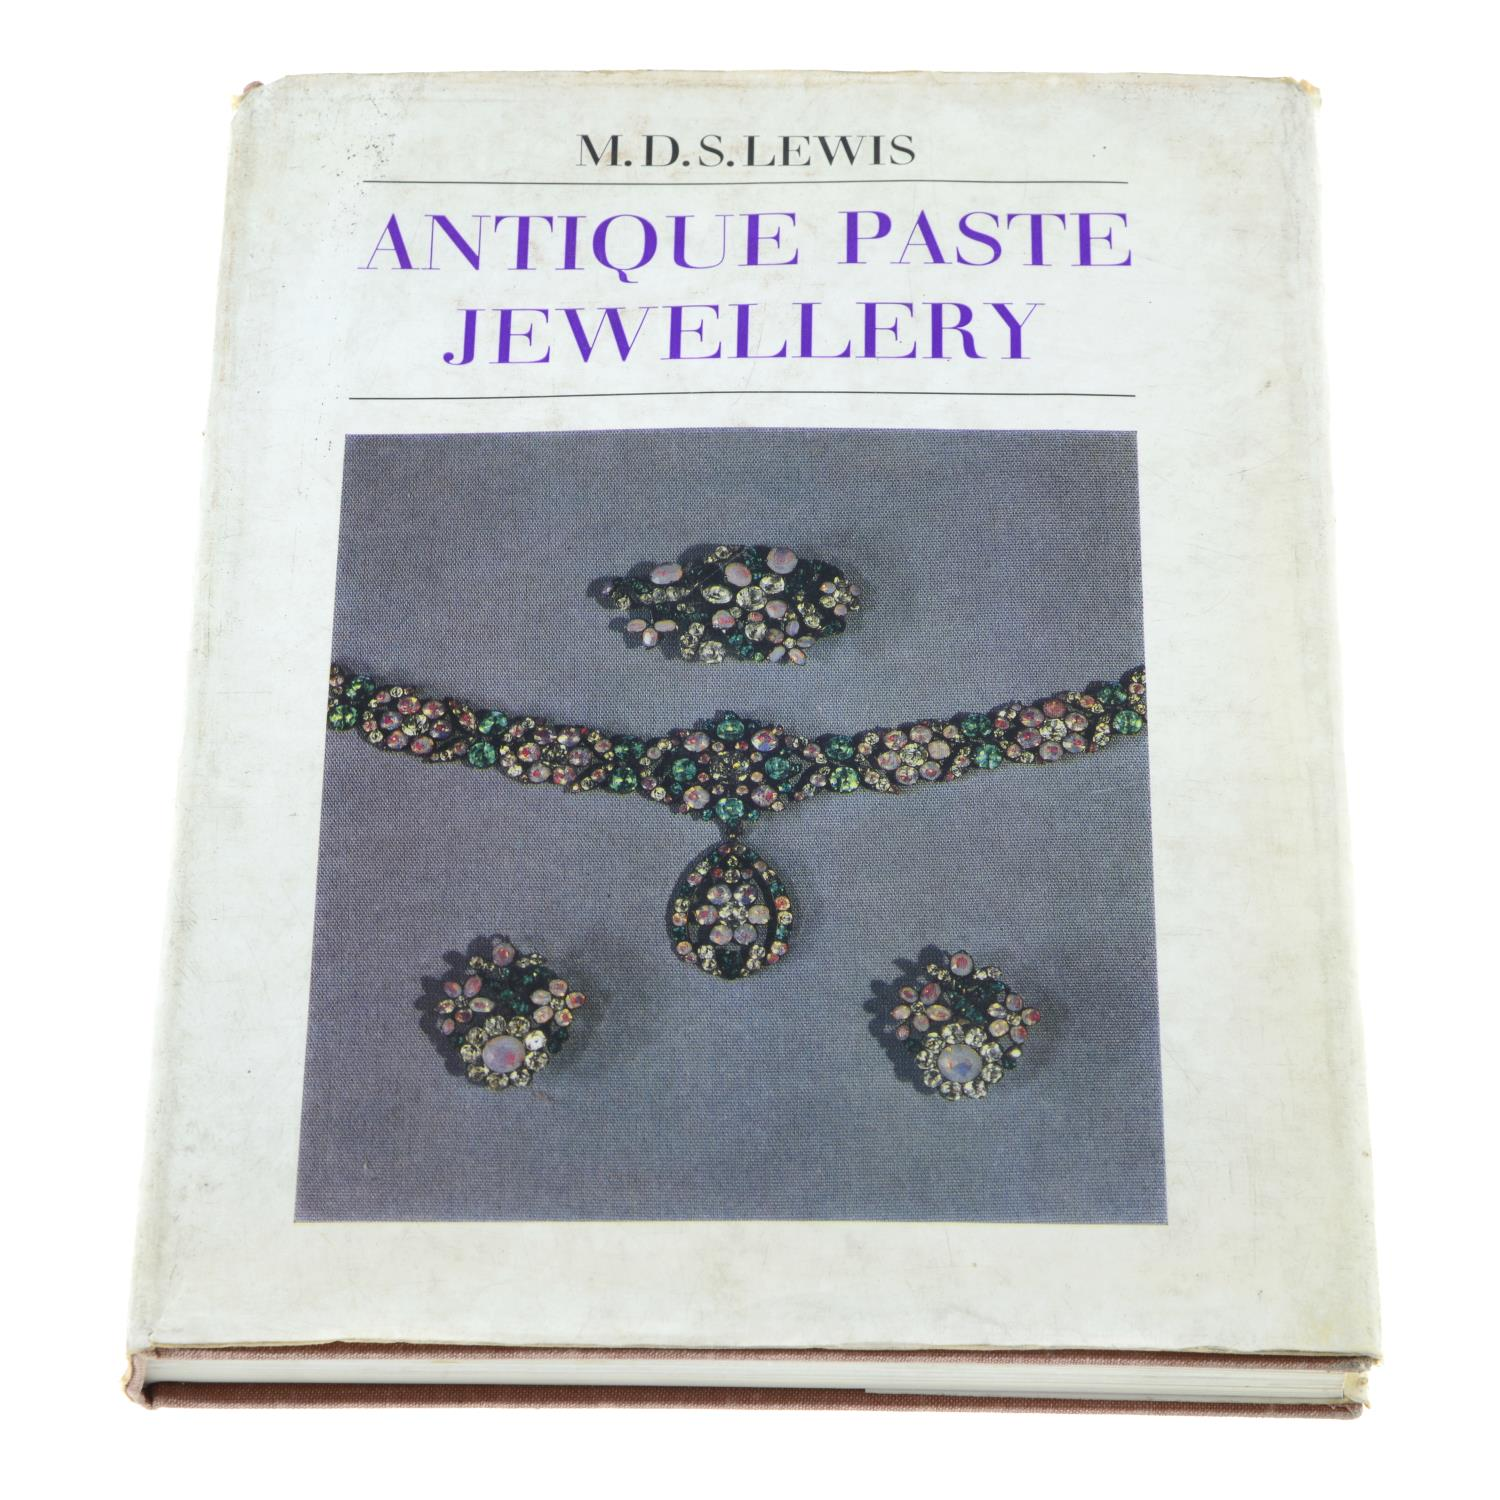 Book: 'Antique Paste Jewellery' by M.